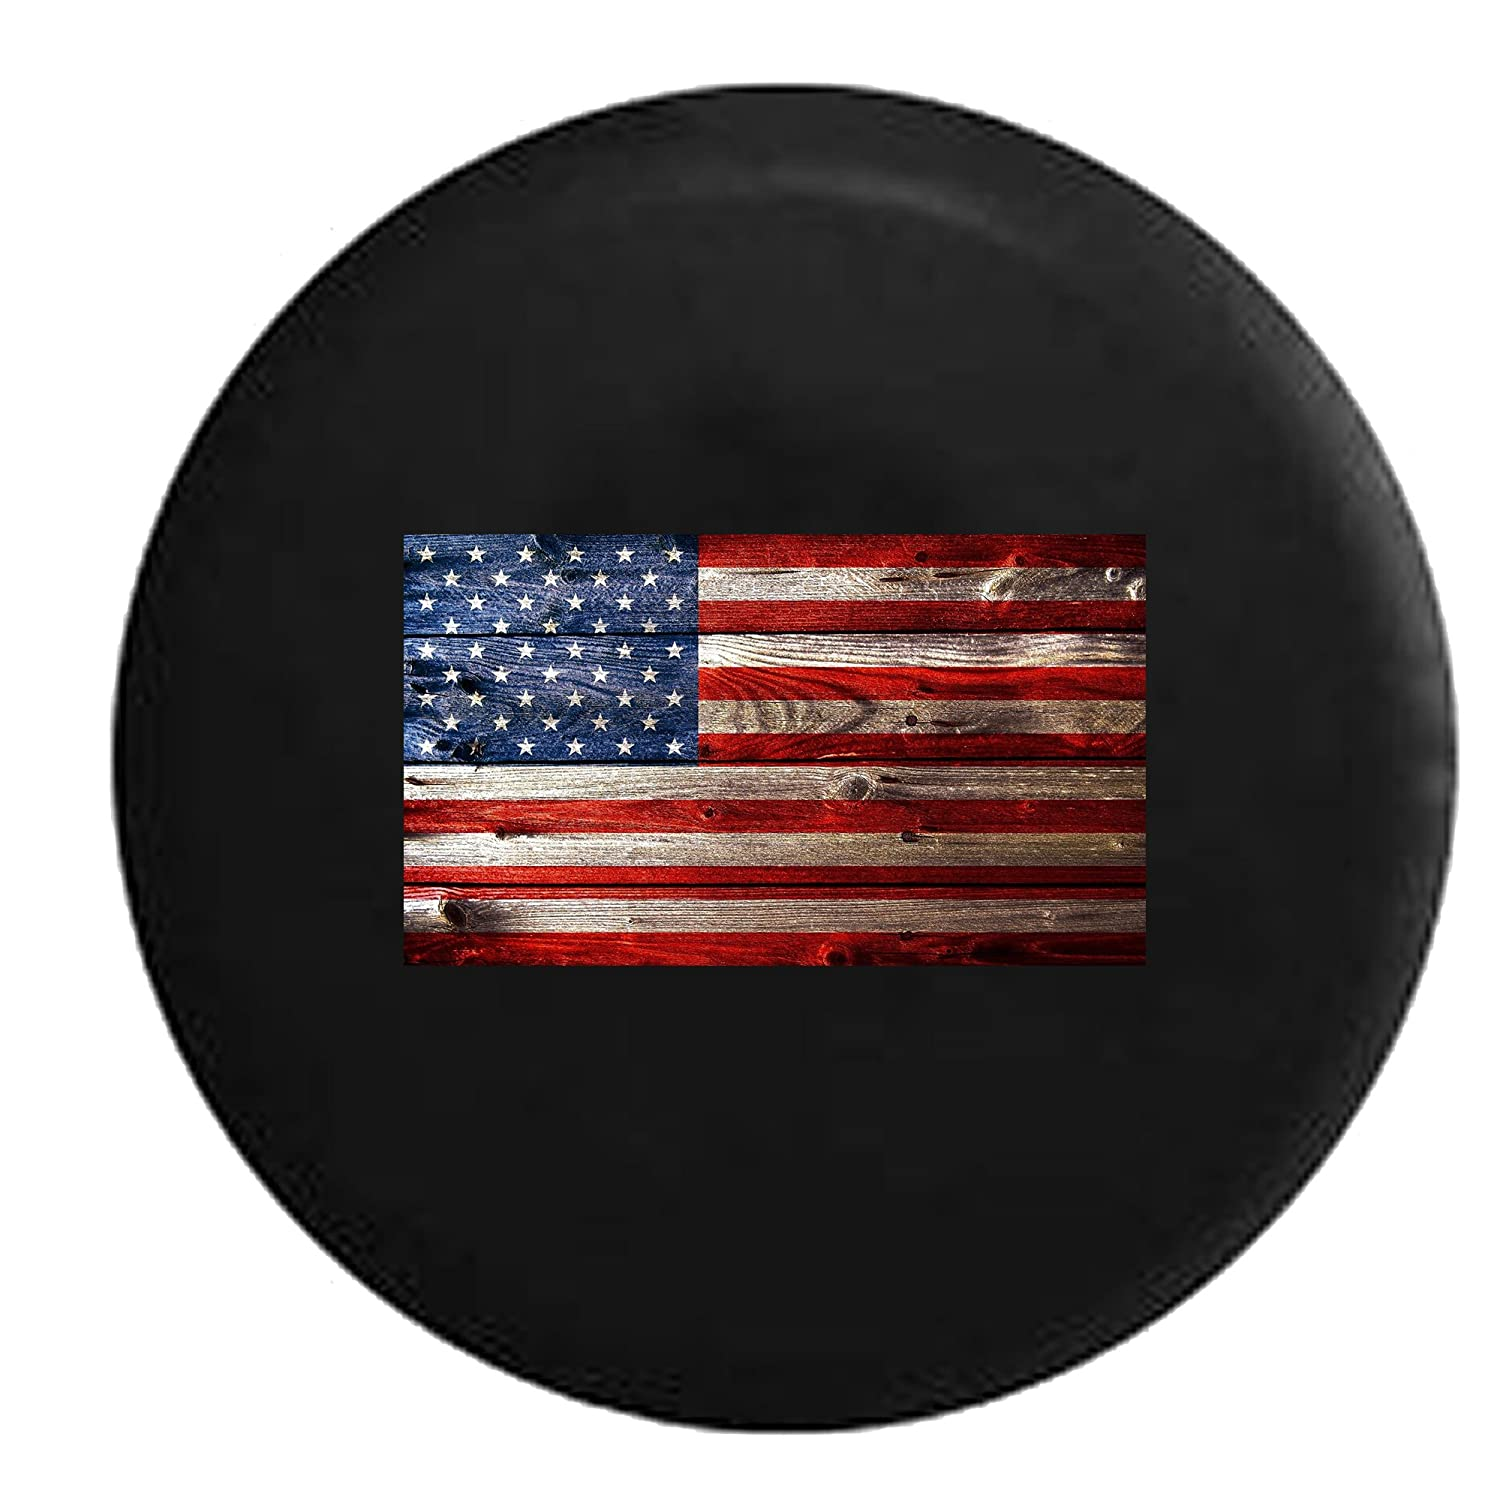 Wooden American Flag Rustic Vintage Jeep RV Spare Tire Cover Black 32 in 556 Gear